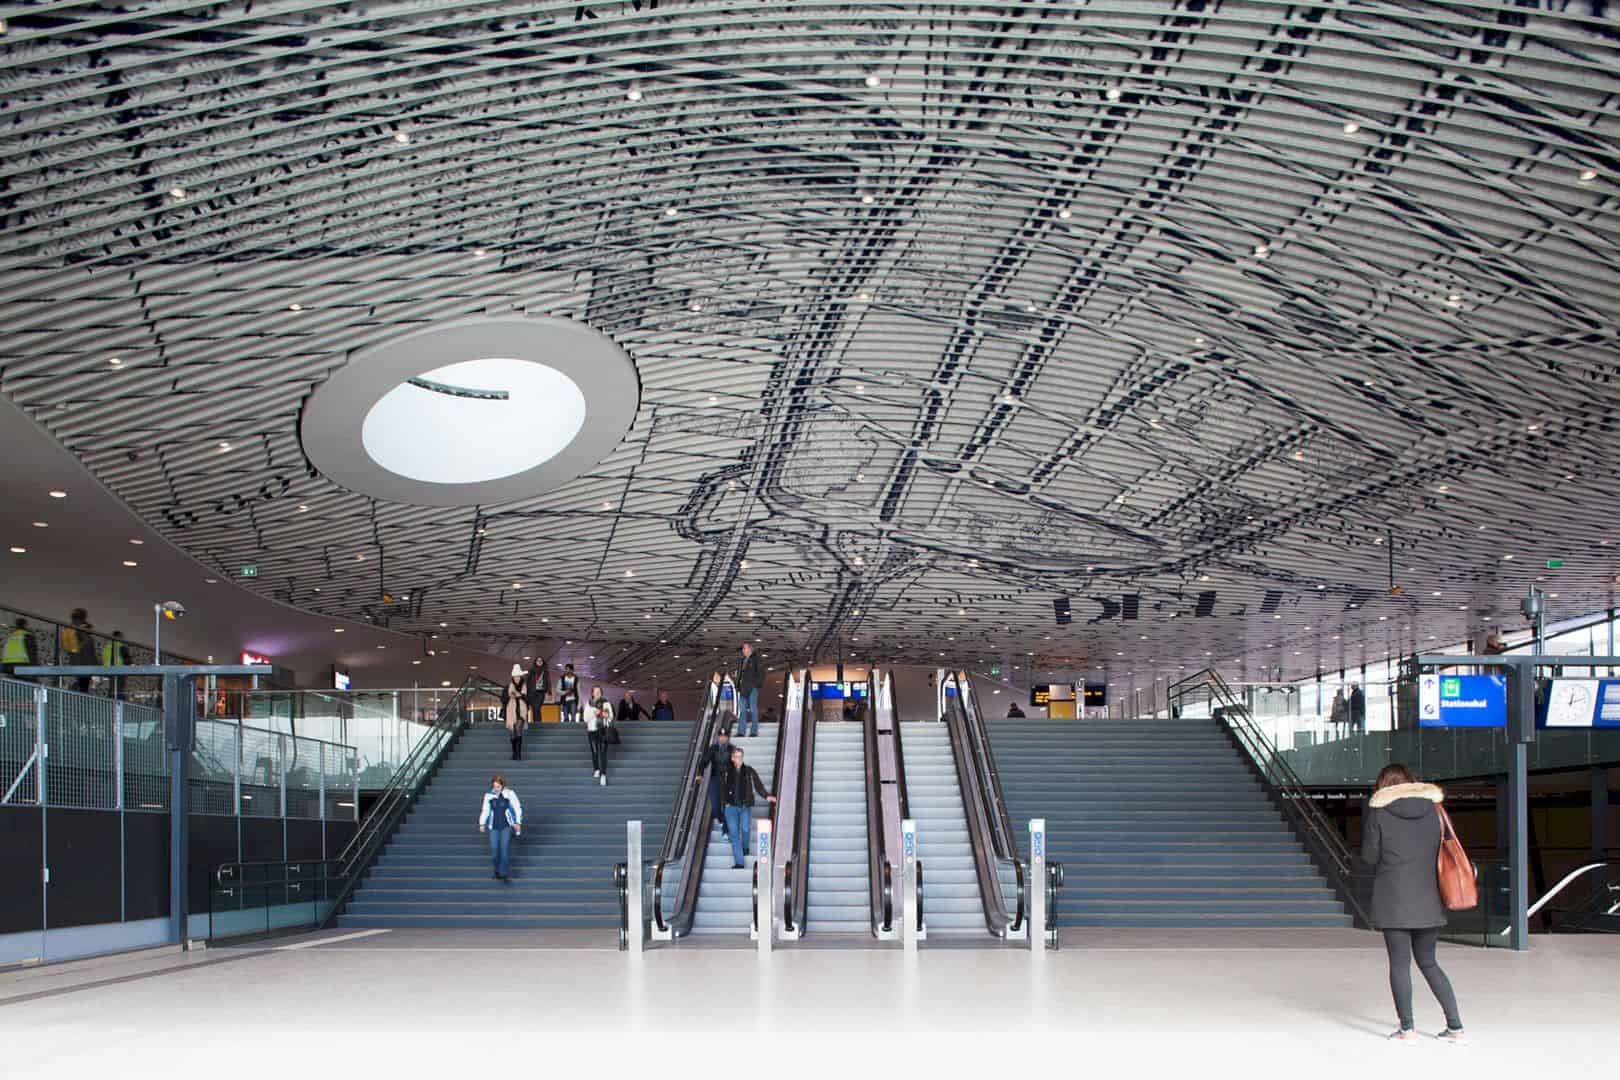 Municipal Offices and Train Station: Forming a New Landmark in Delft, Netherlands